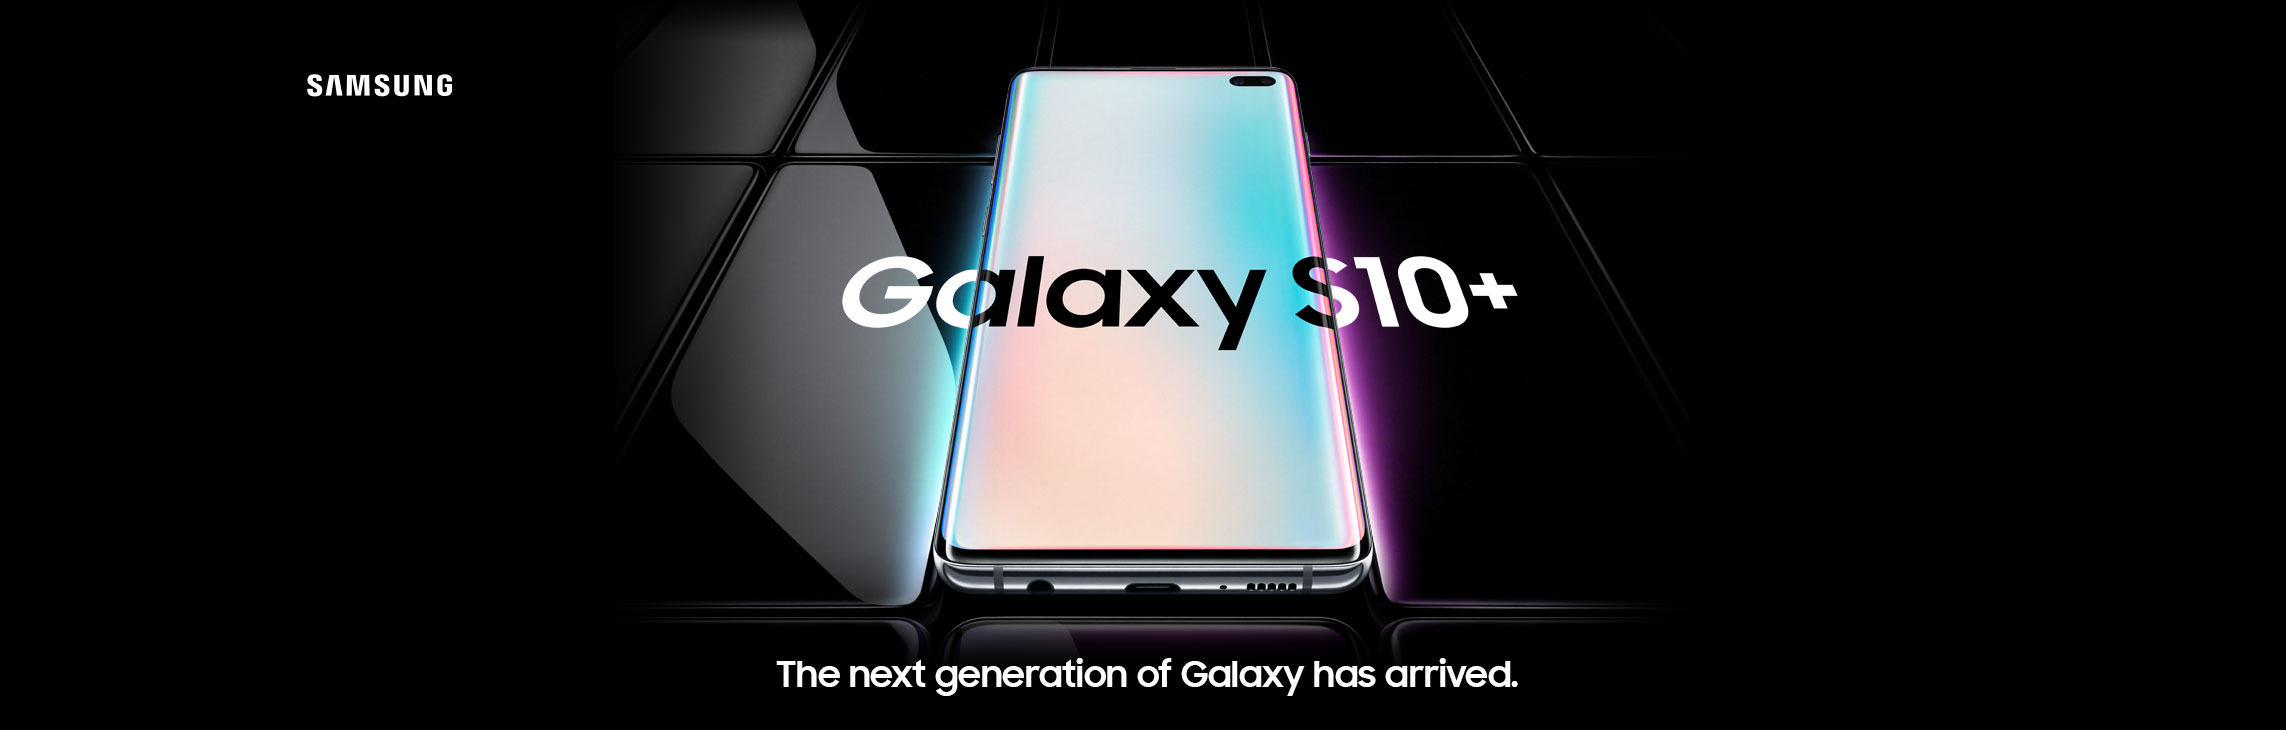 The next generation of Galaxy has arrived